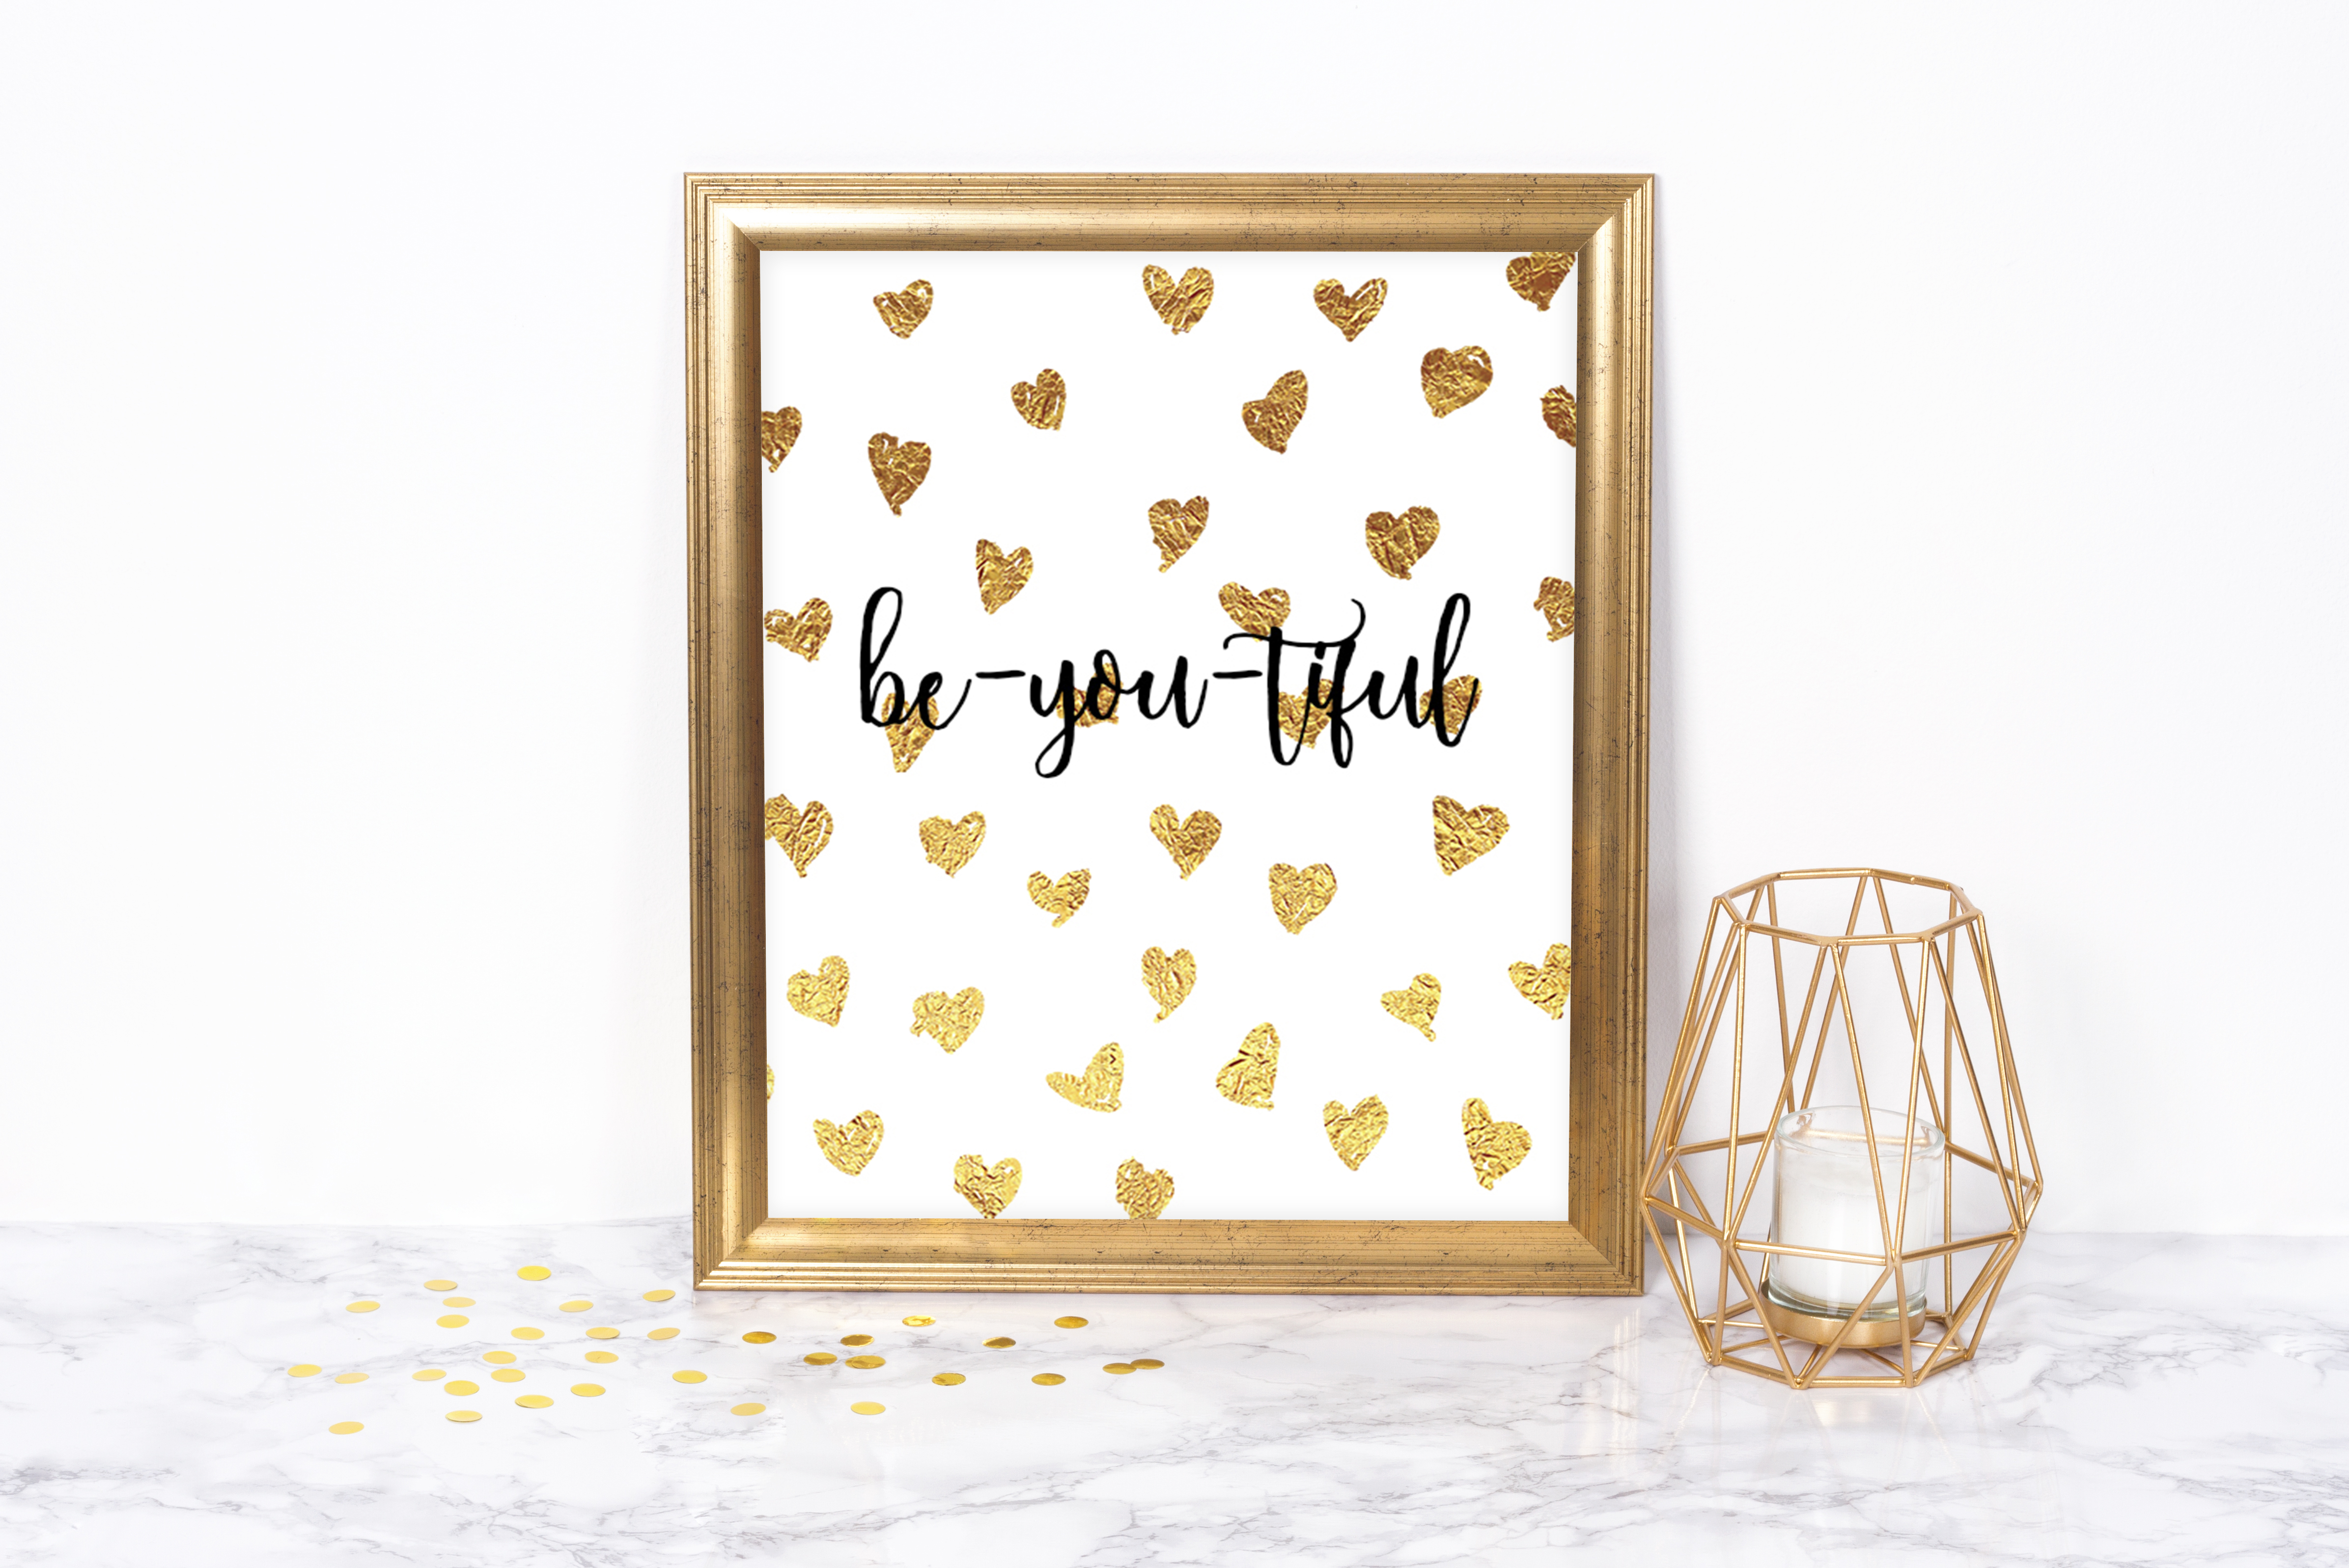 Be-you-tiful Gold Hearts Printable 00016